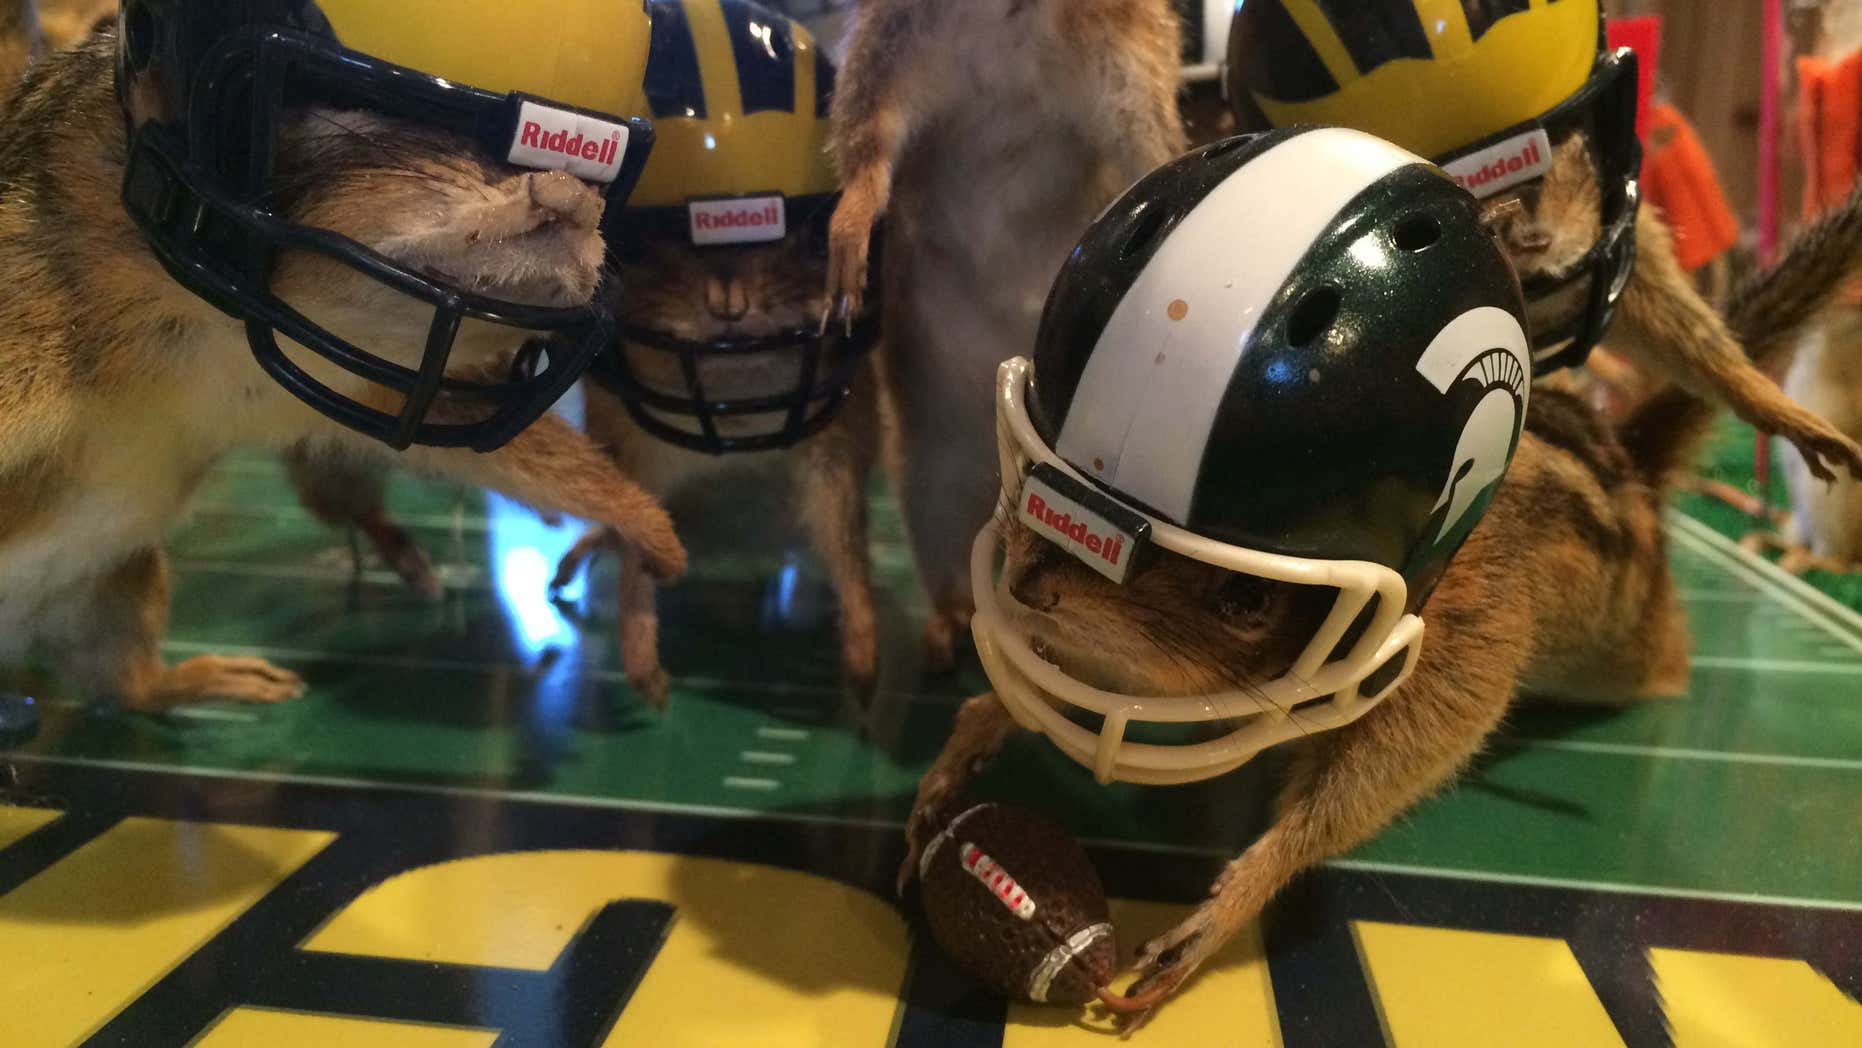 This photo taken Monday, Oct. 26, 2015, shows stuffed chipmunks portraying players on the final play of the Michigan State-Michigan NCAA college football game at the home of taxidermist Nick Saade in Lansing, Mich.